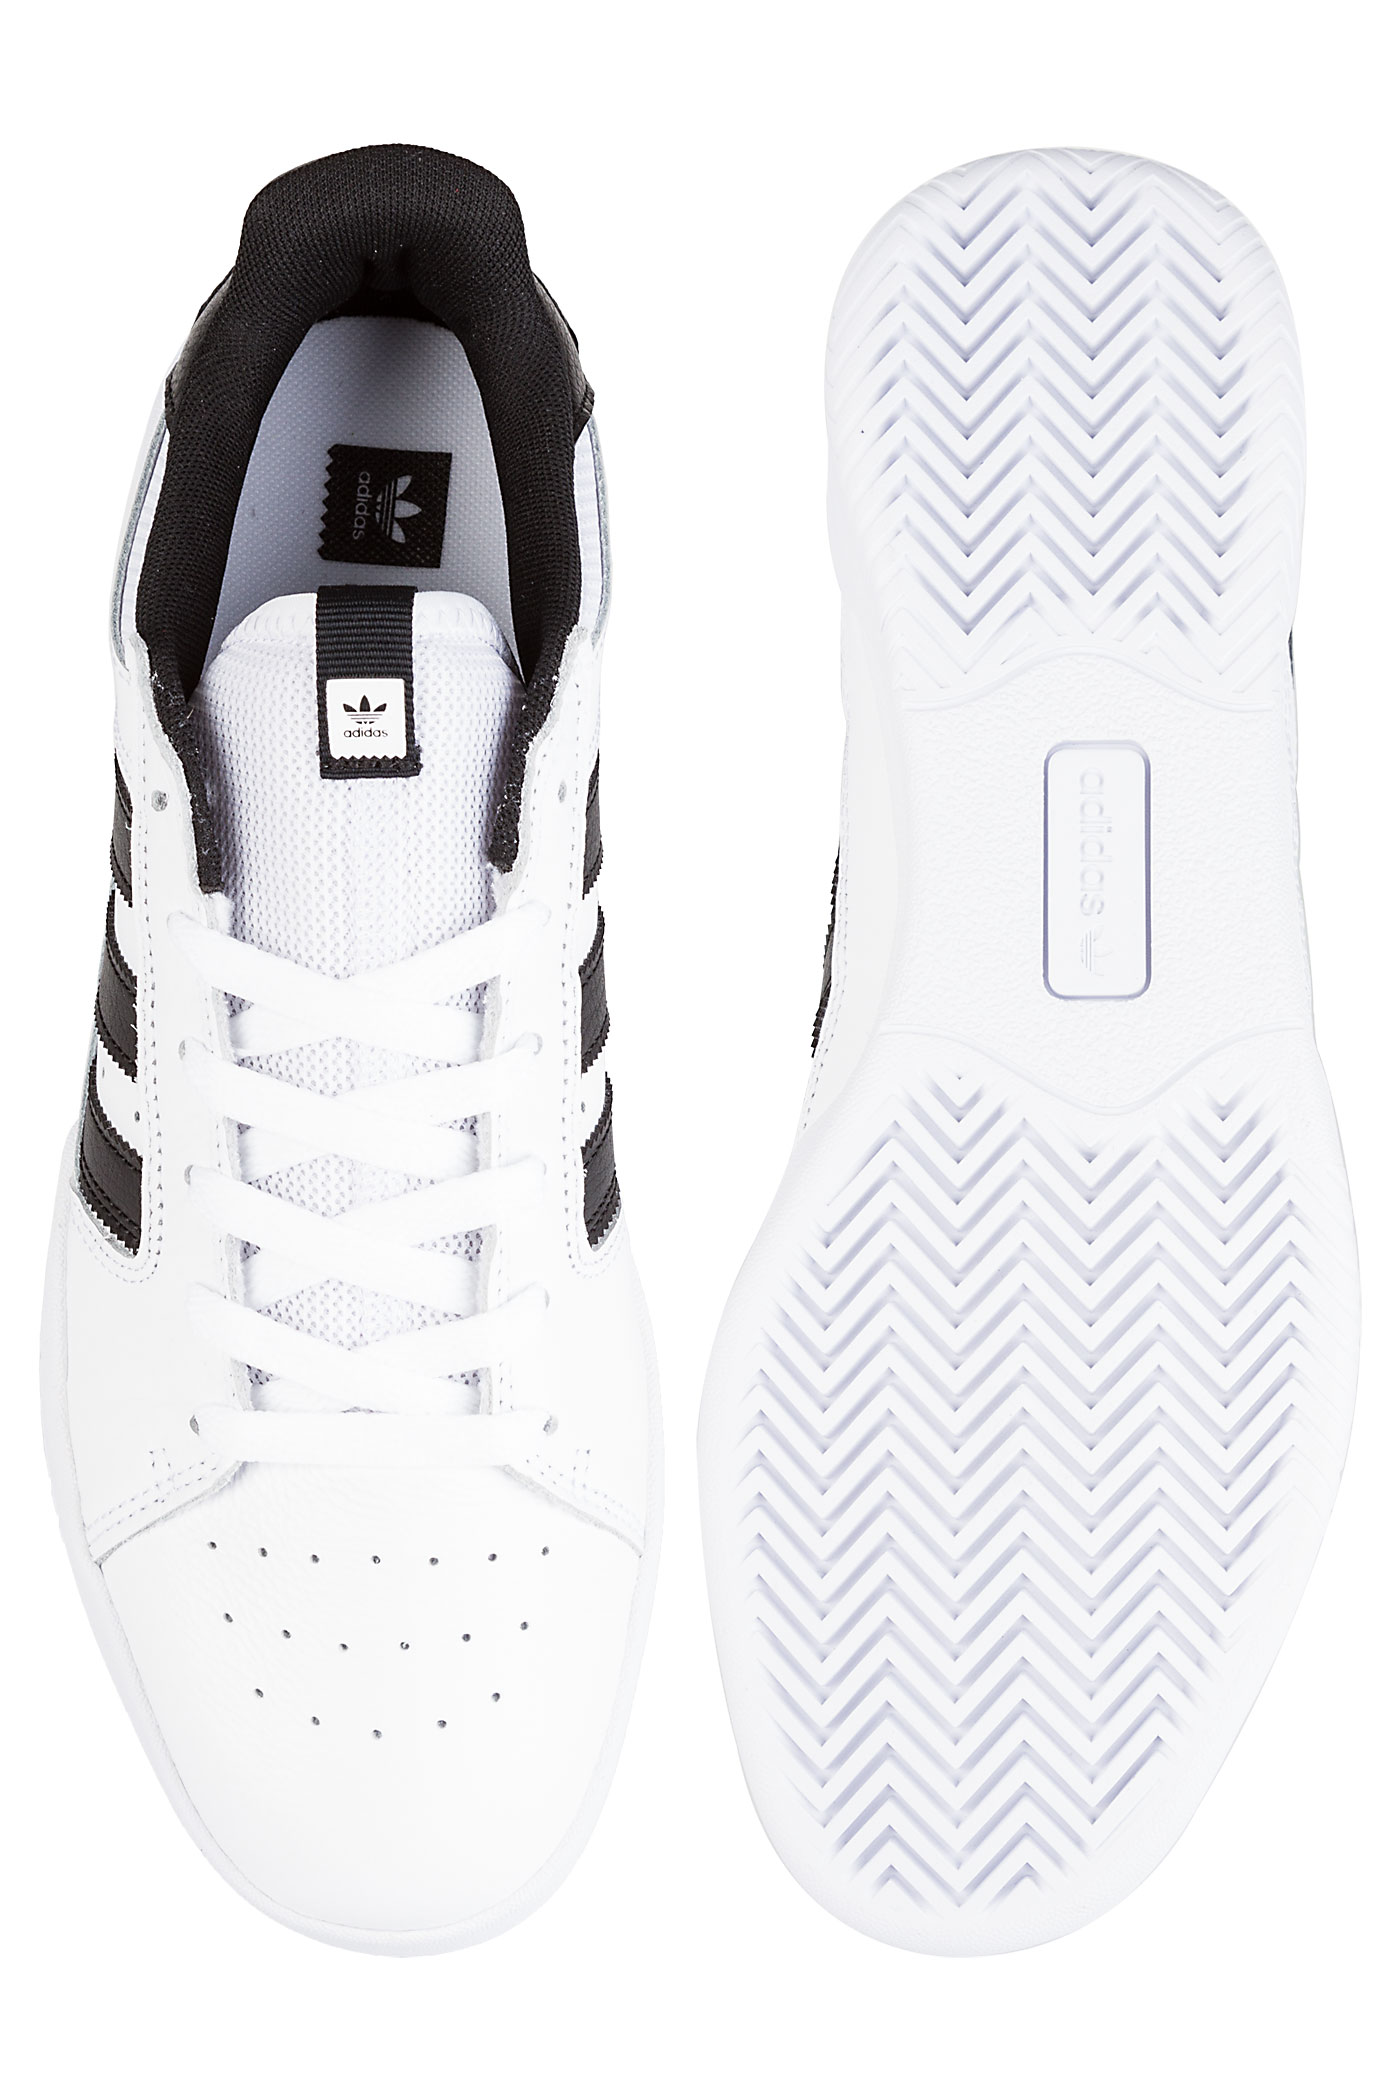 Low Adidas White Skateboarding Chaussurewhite Black Vrx Core 3A5Rq4jL